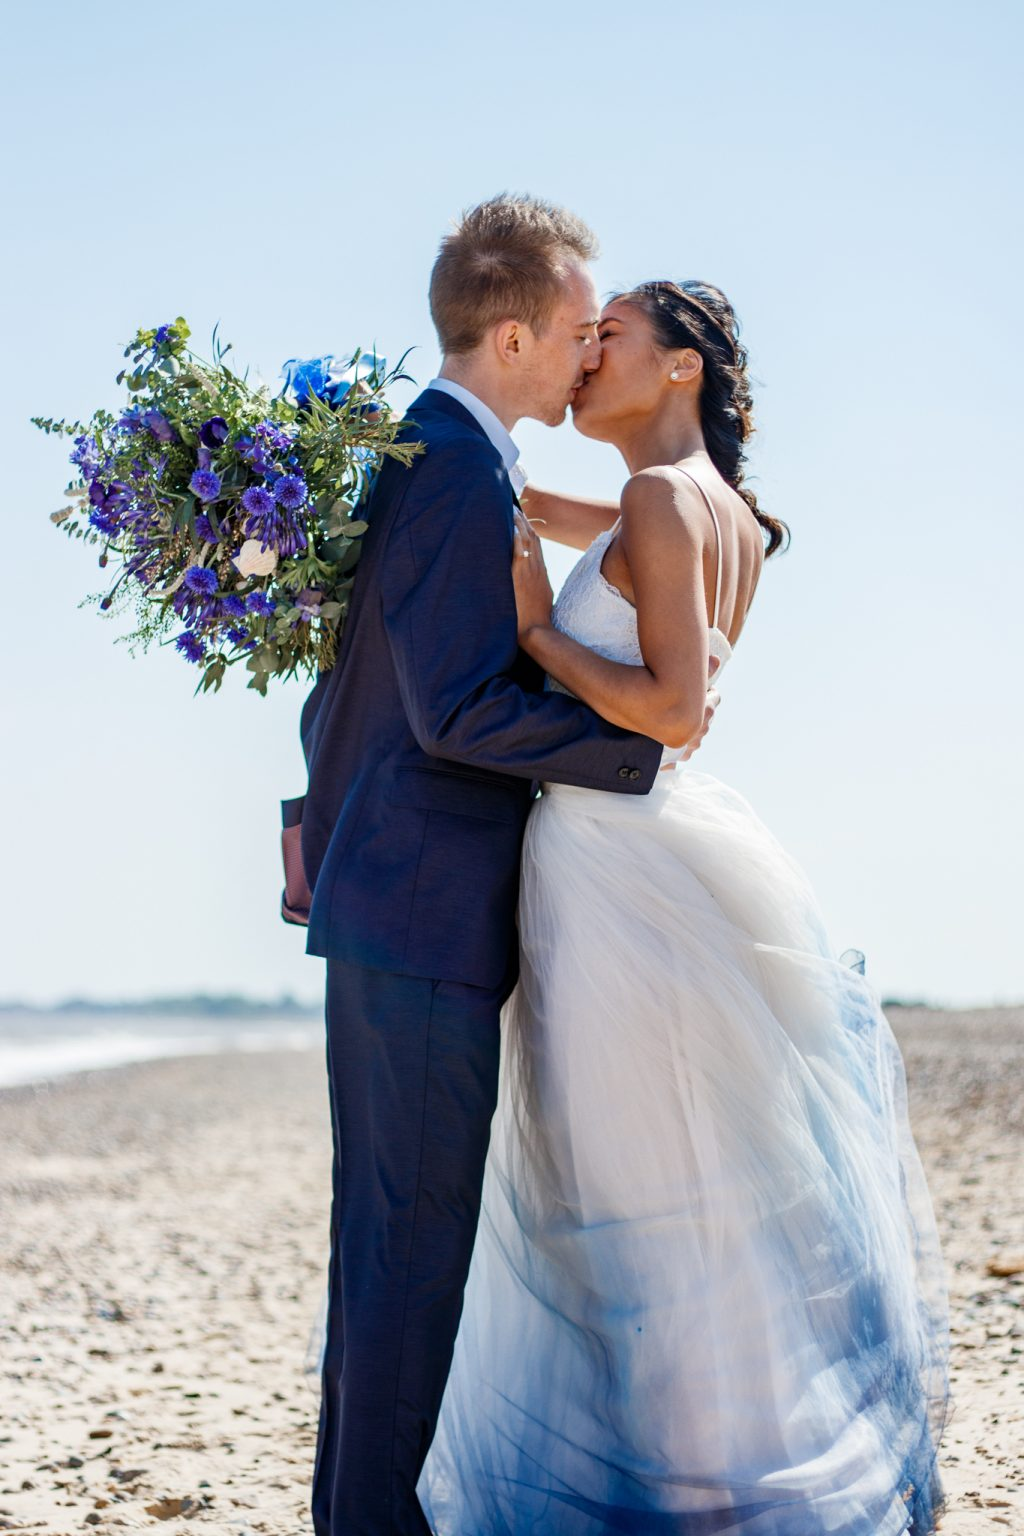 Boho Beach Wedding with Ombre Dress and Blue Wedding Cake